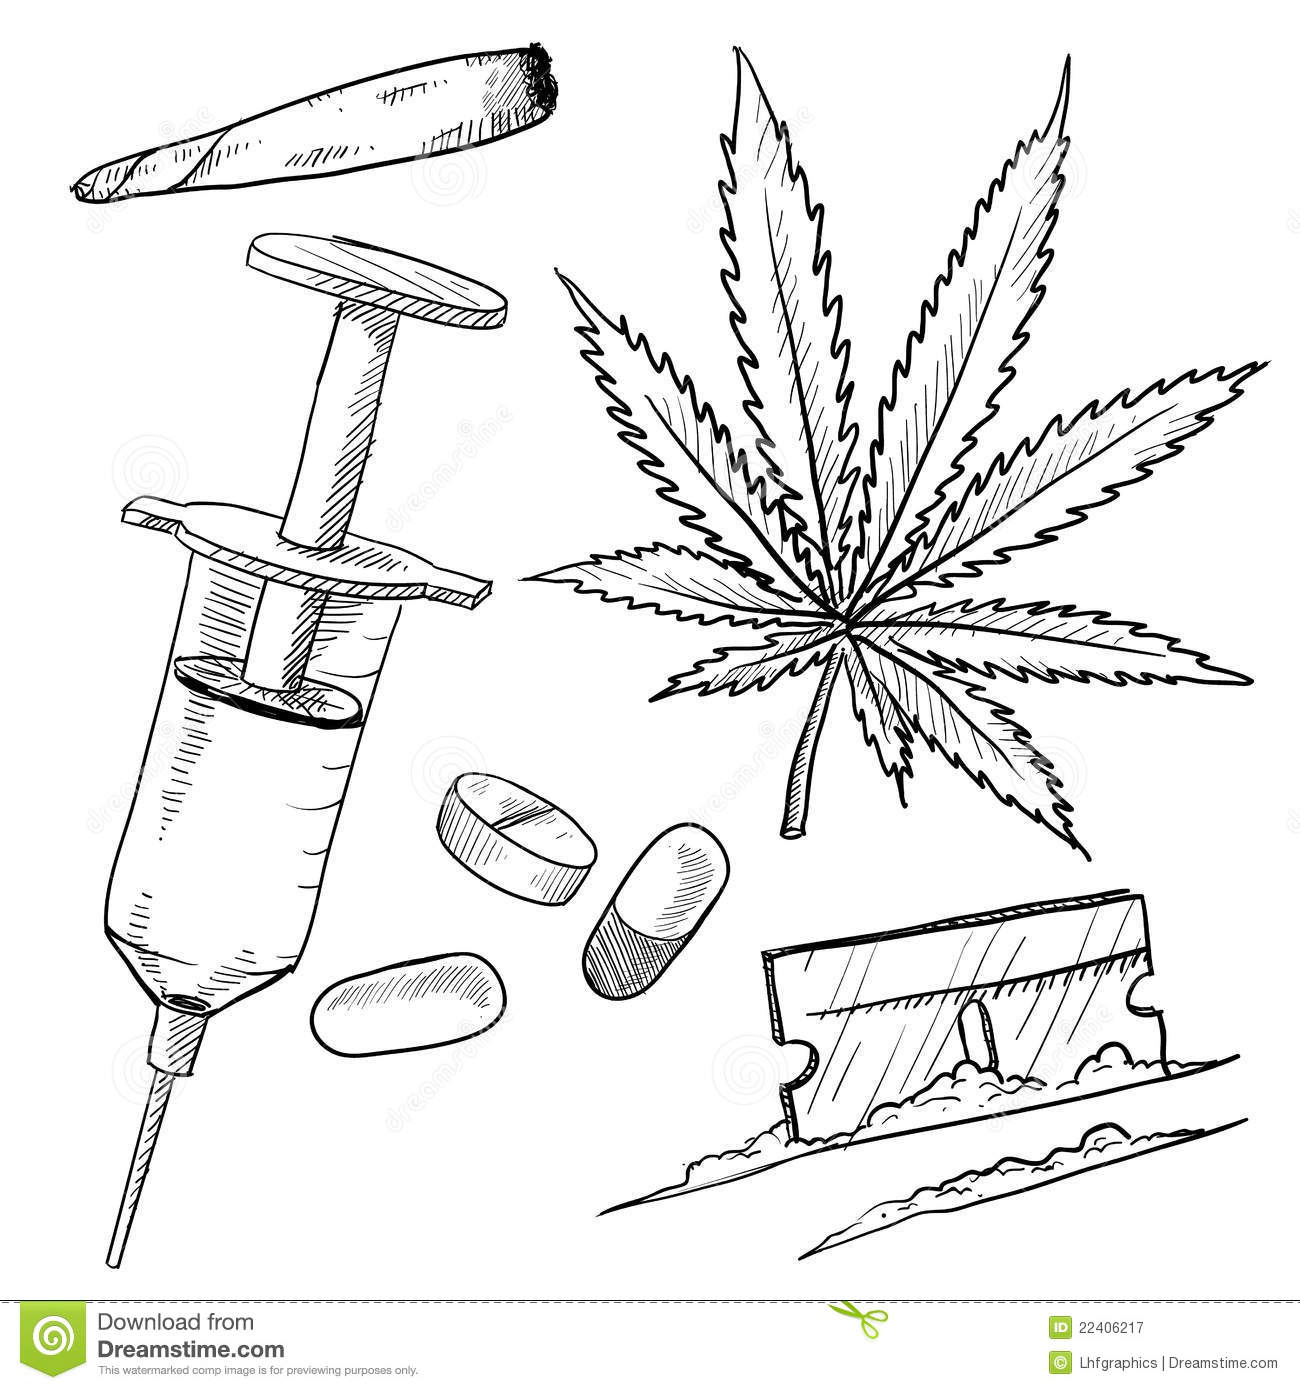 Illegal Drugs Drawing Royalty Free Stock Photography   Image  22406217